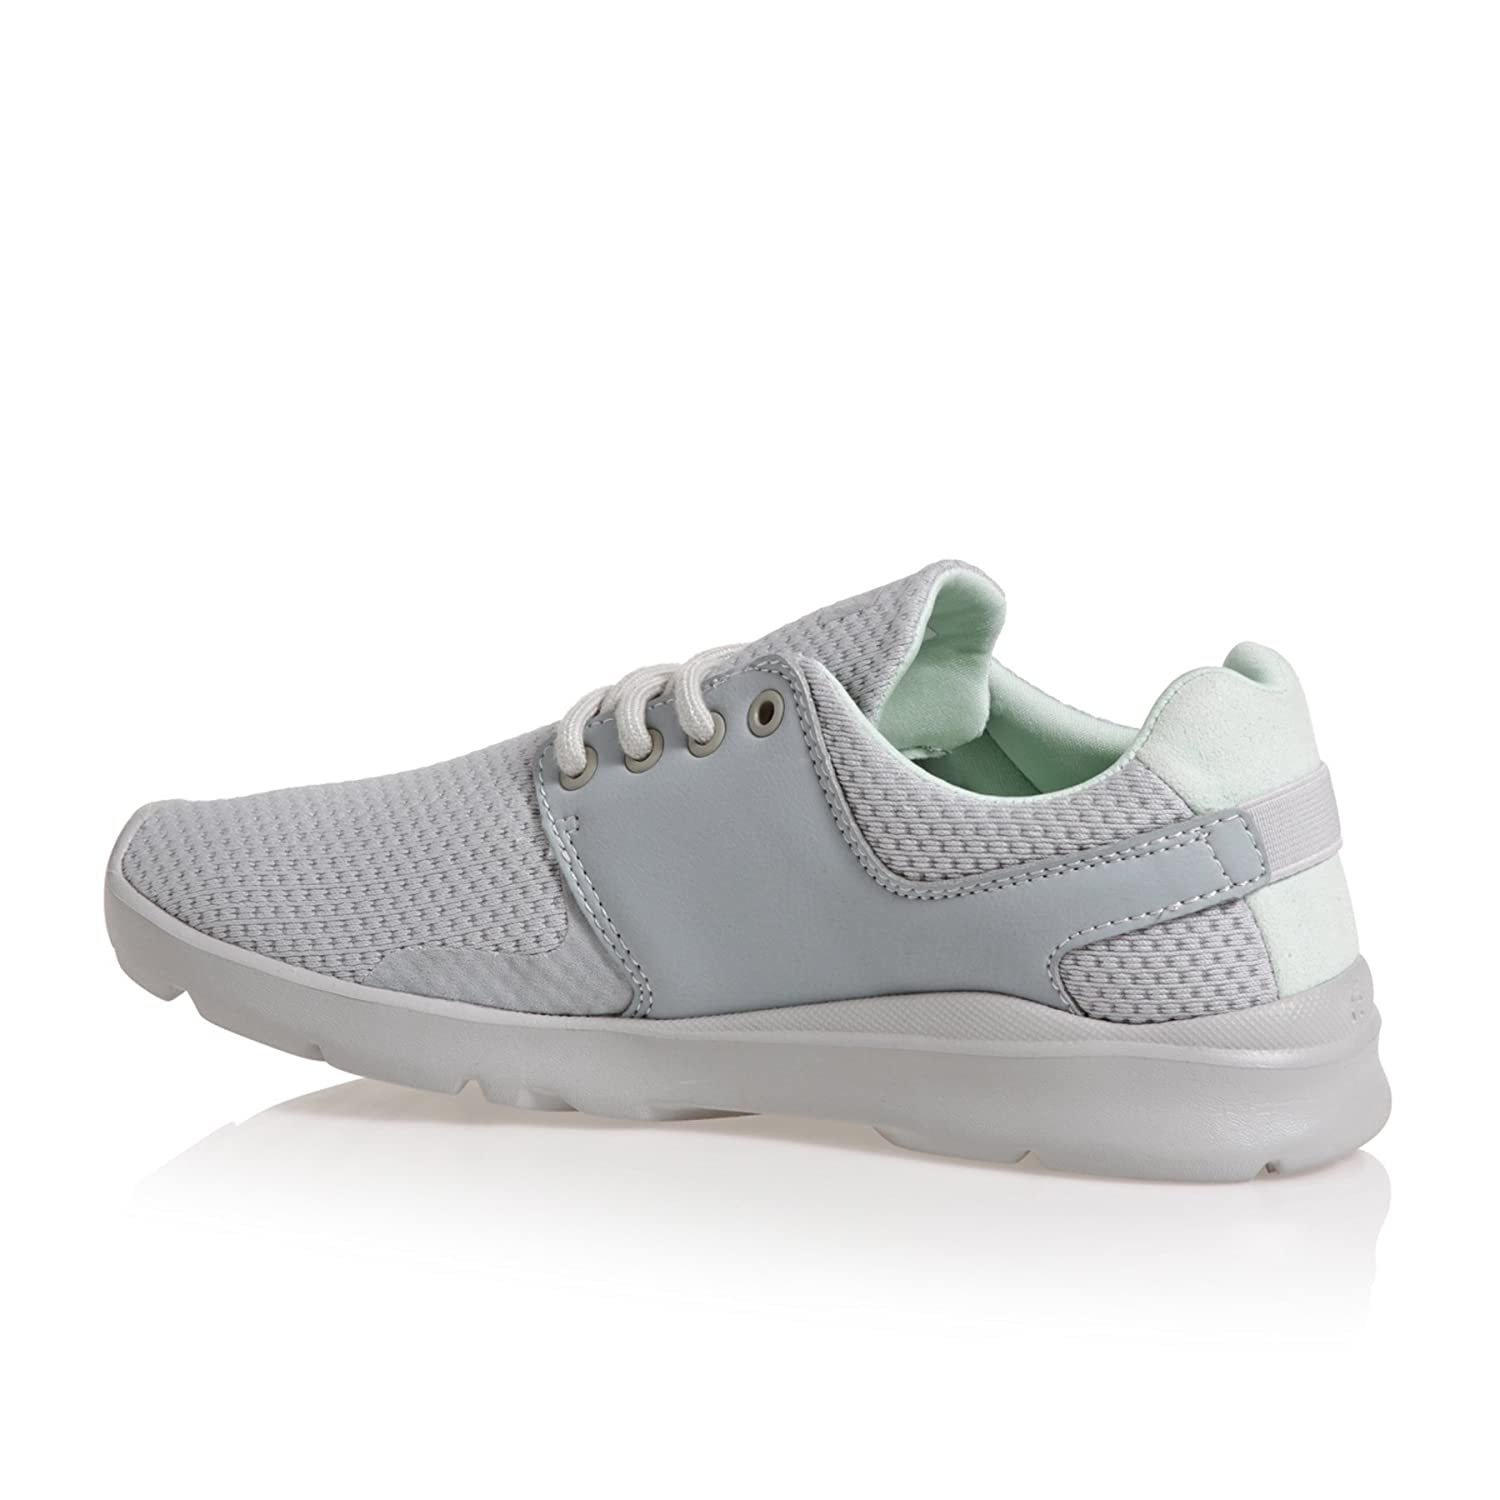 Etnies Womens Scout XT Sneaker Grey B074Q6YL9Y 7.5 B(M) US|Light Grey Sneaker 52c9b3